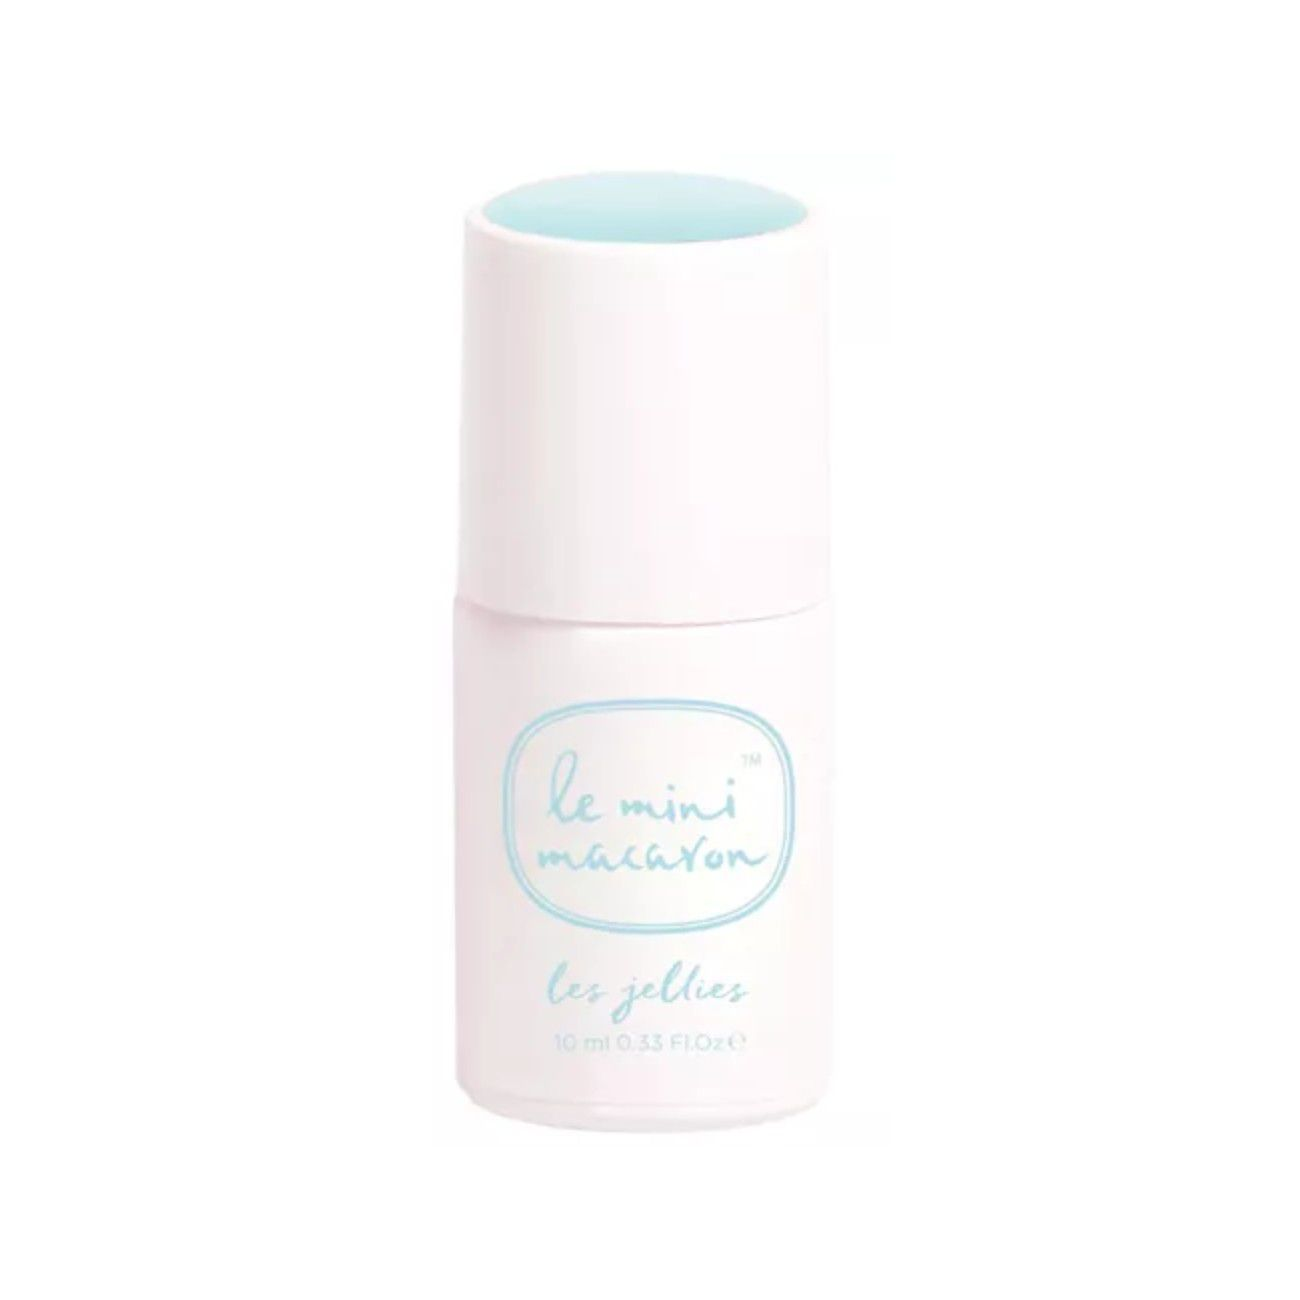 Bottle of white nail polish with light blue lettering.